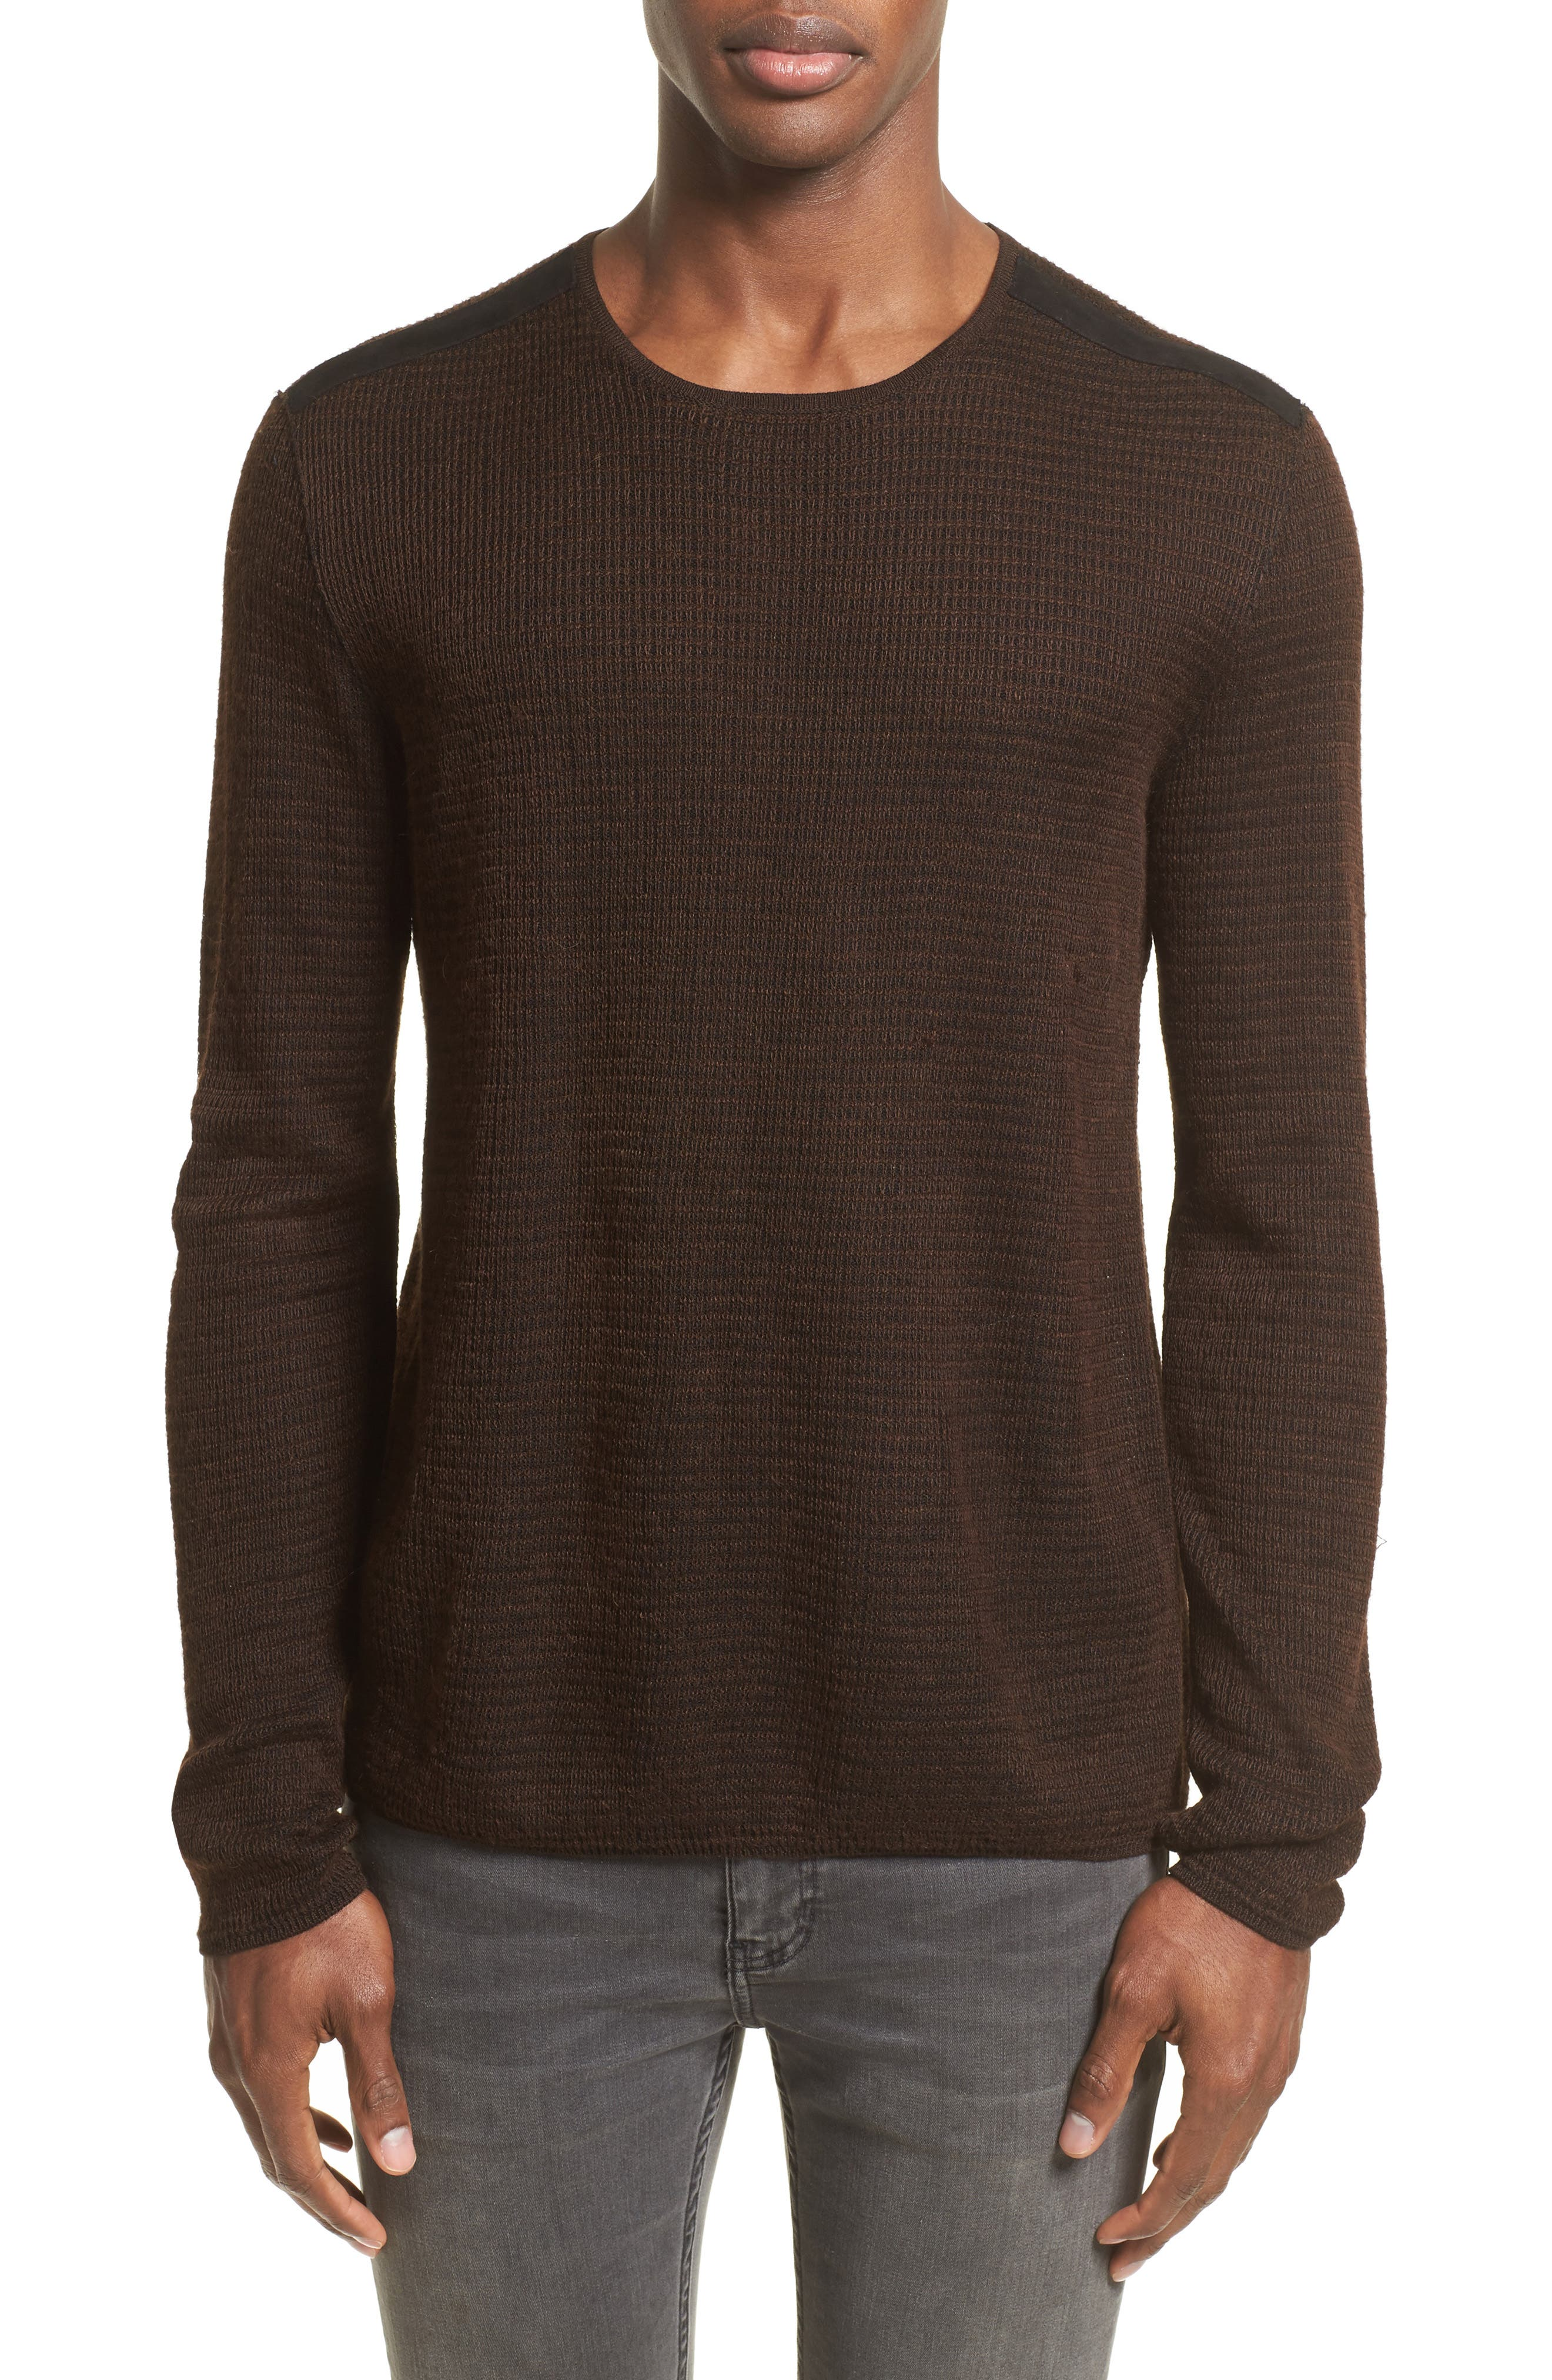 Alternate Image 1 Selected - John Varvatos Collection Waffle Knit Sweater